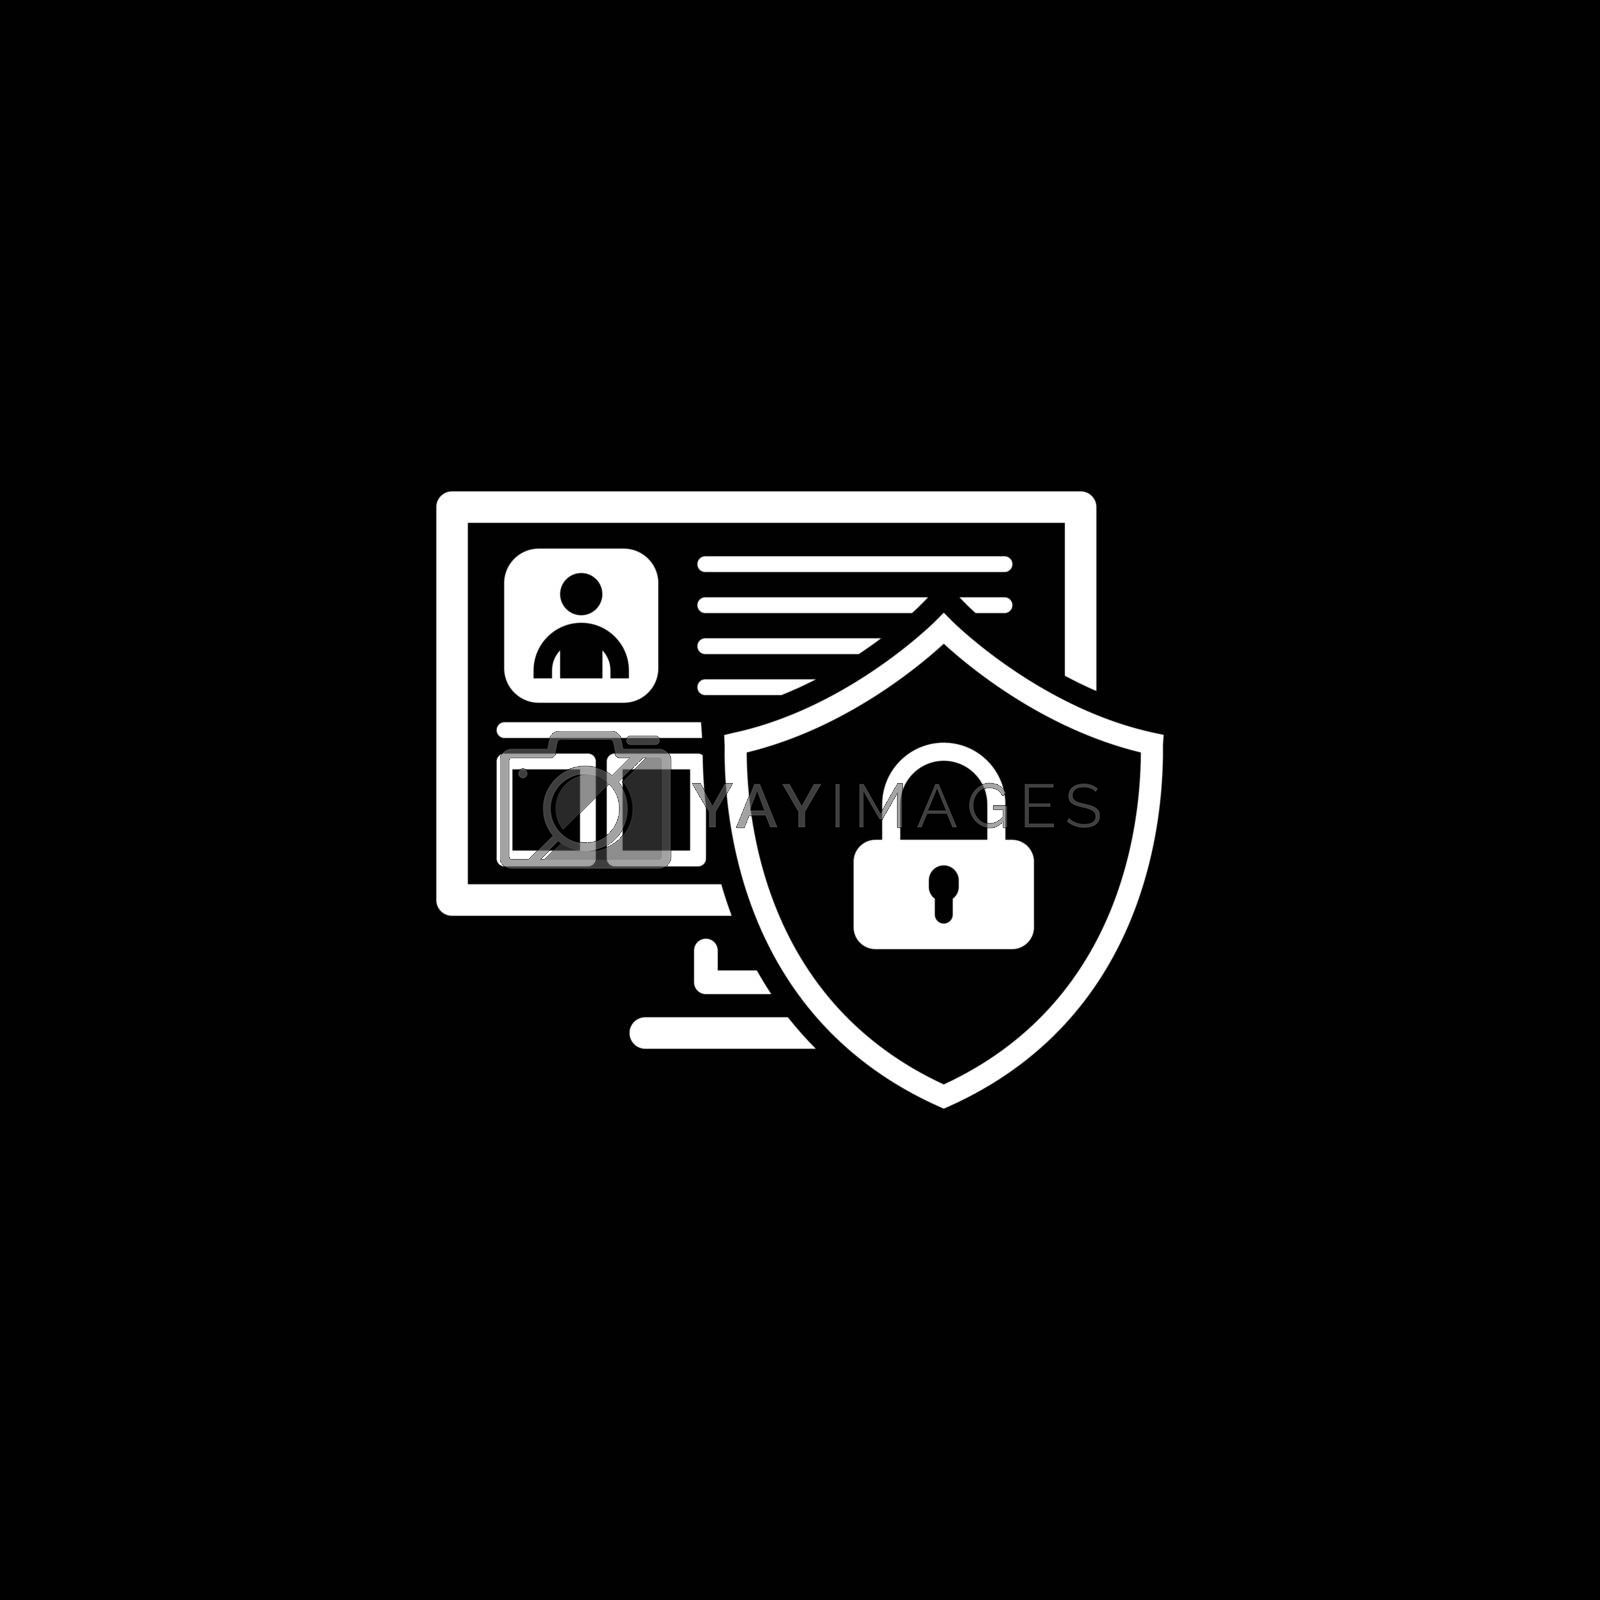 Private Security Protection Icon. Flat Design. Business Concept Isolated Illustration.